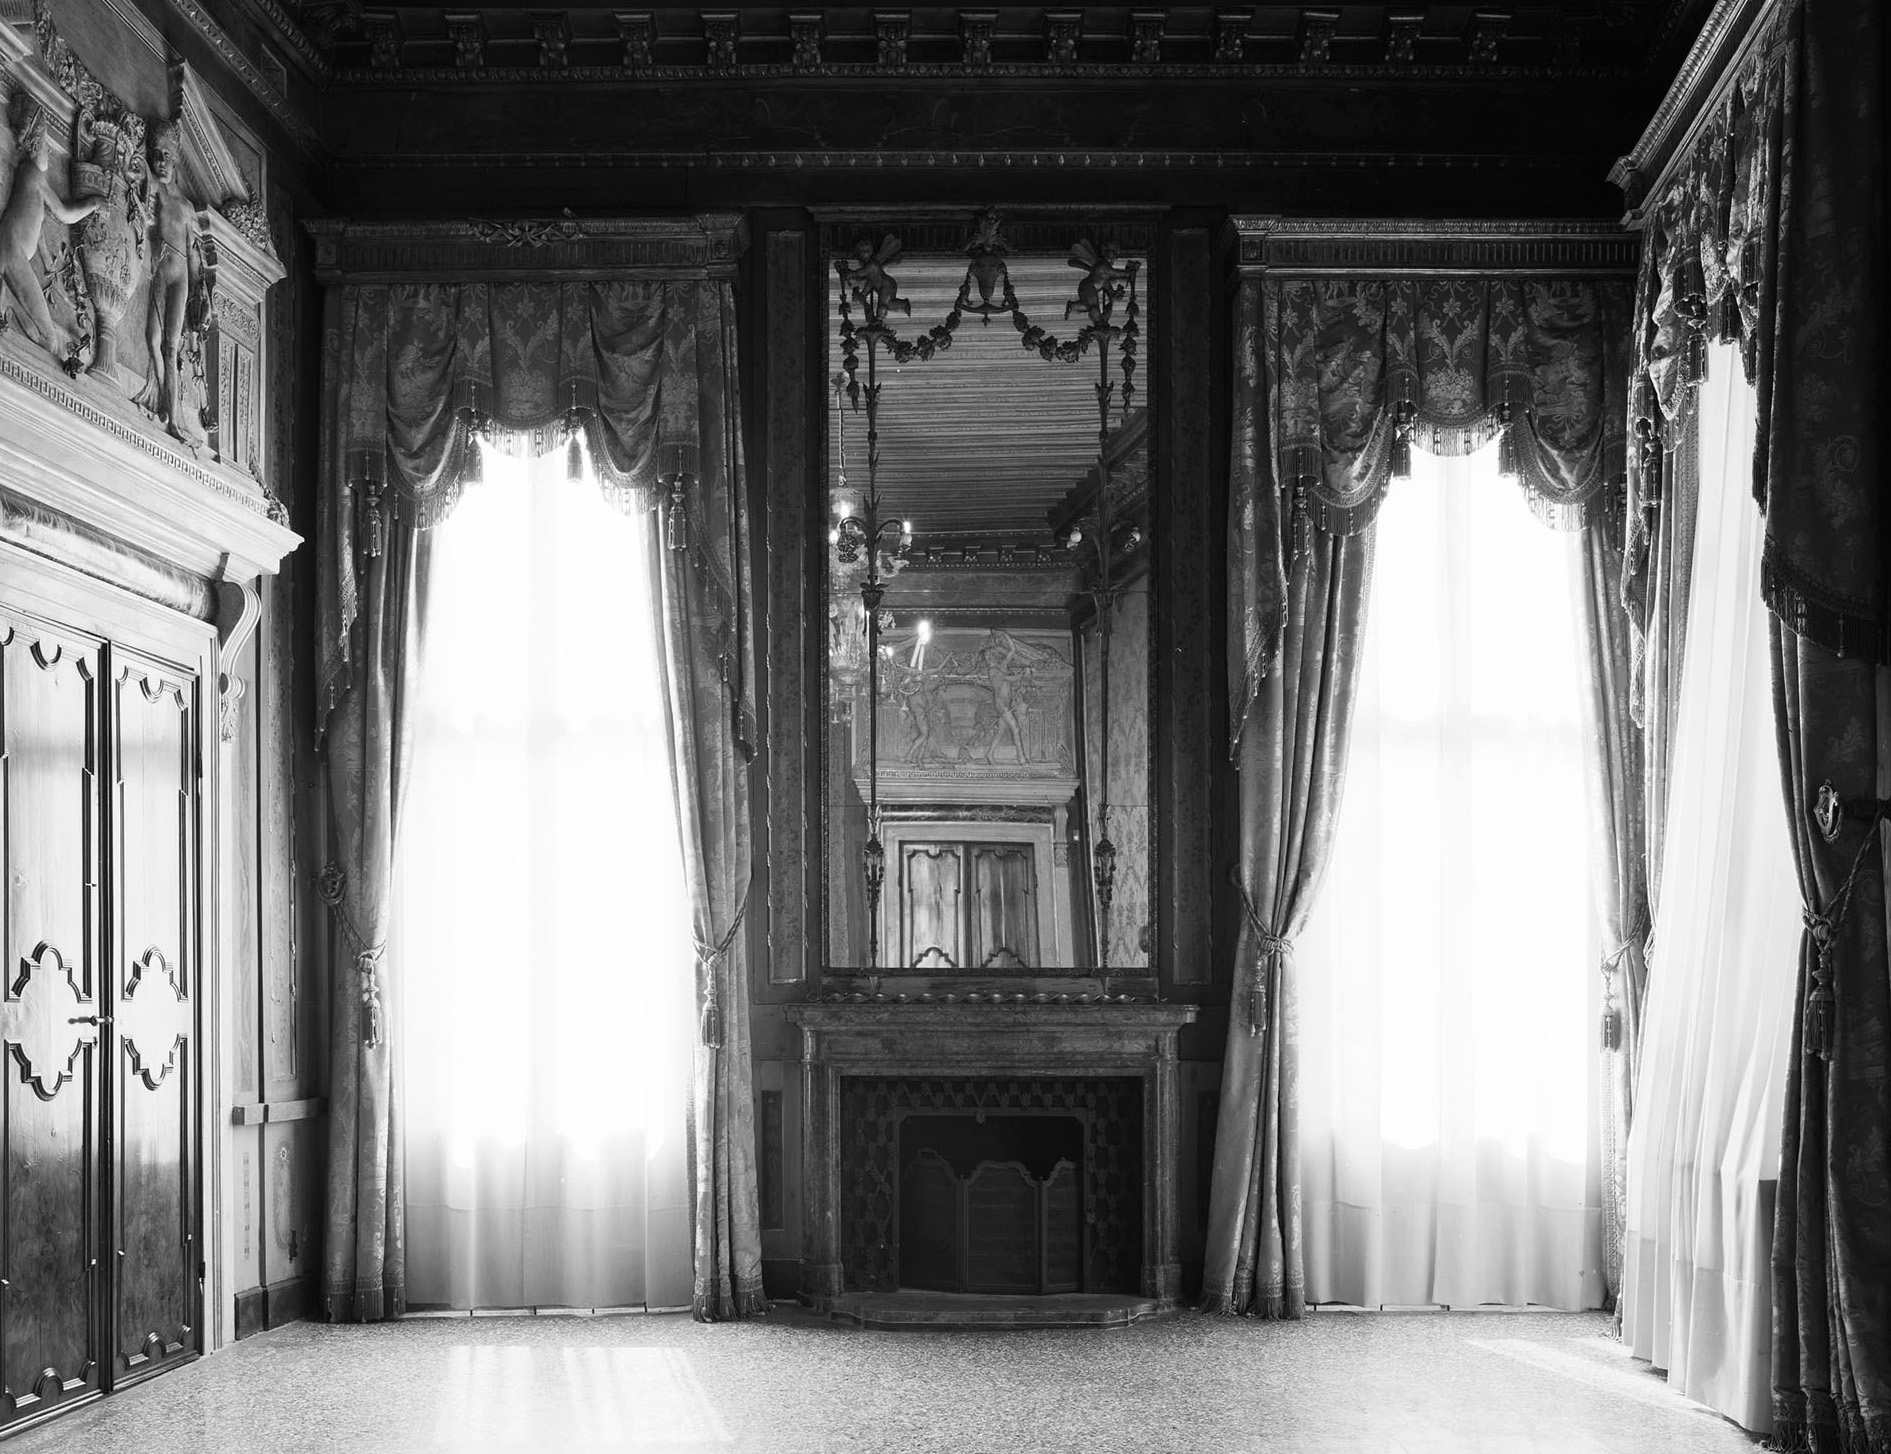 Axel Hütte, Fondazione Levi, Italy 2012, black and white photograph printed on glass and mirror 58 x 69 cm / Courtesy: Daniel Marzona Gallery